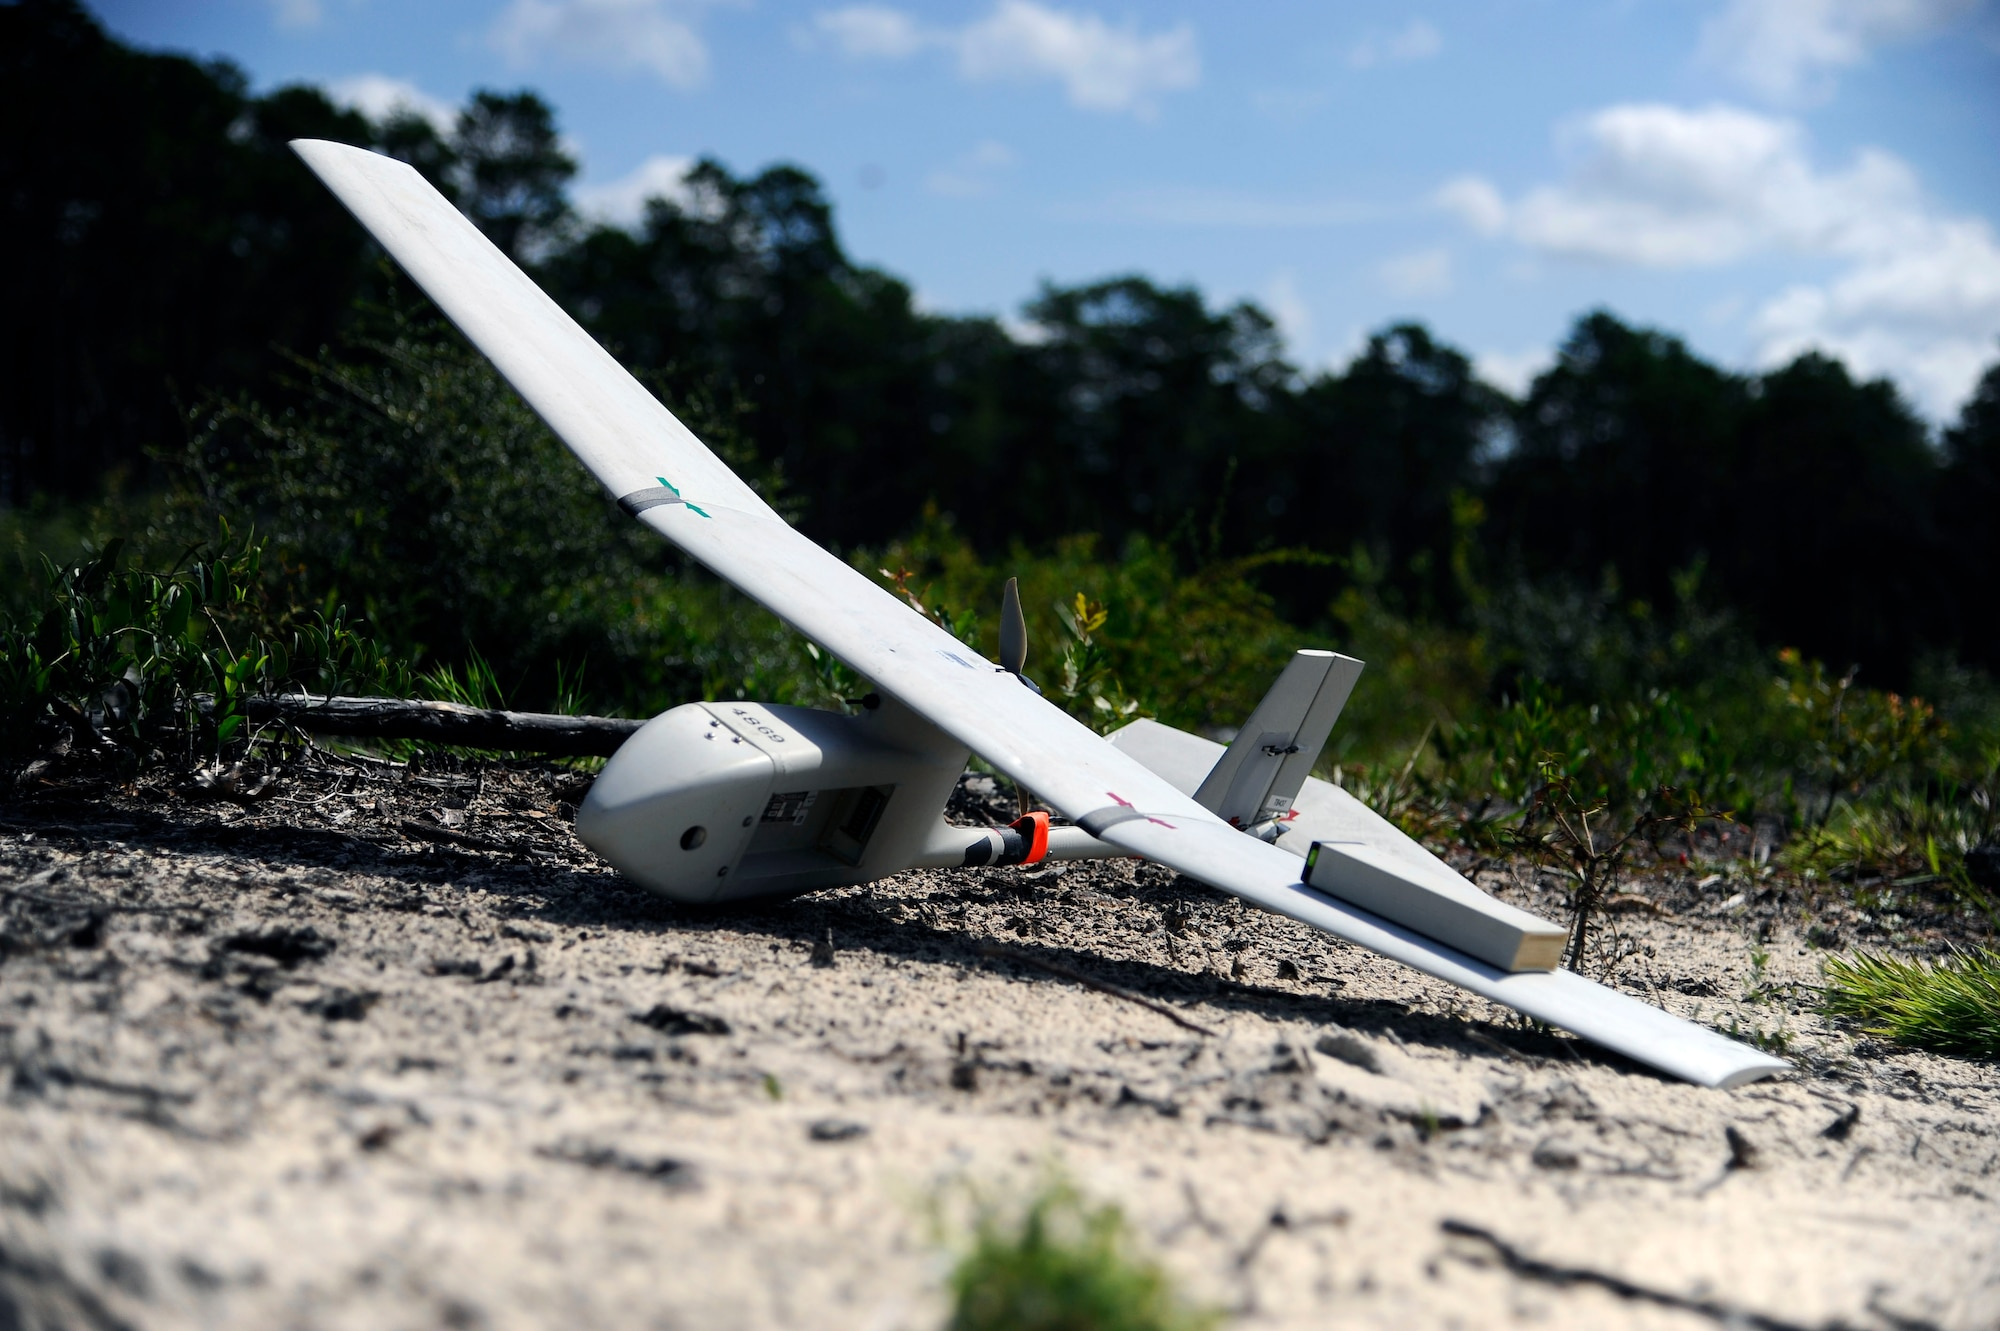 A RQ-11B Raven rests in the dirt